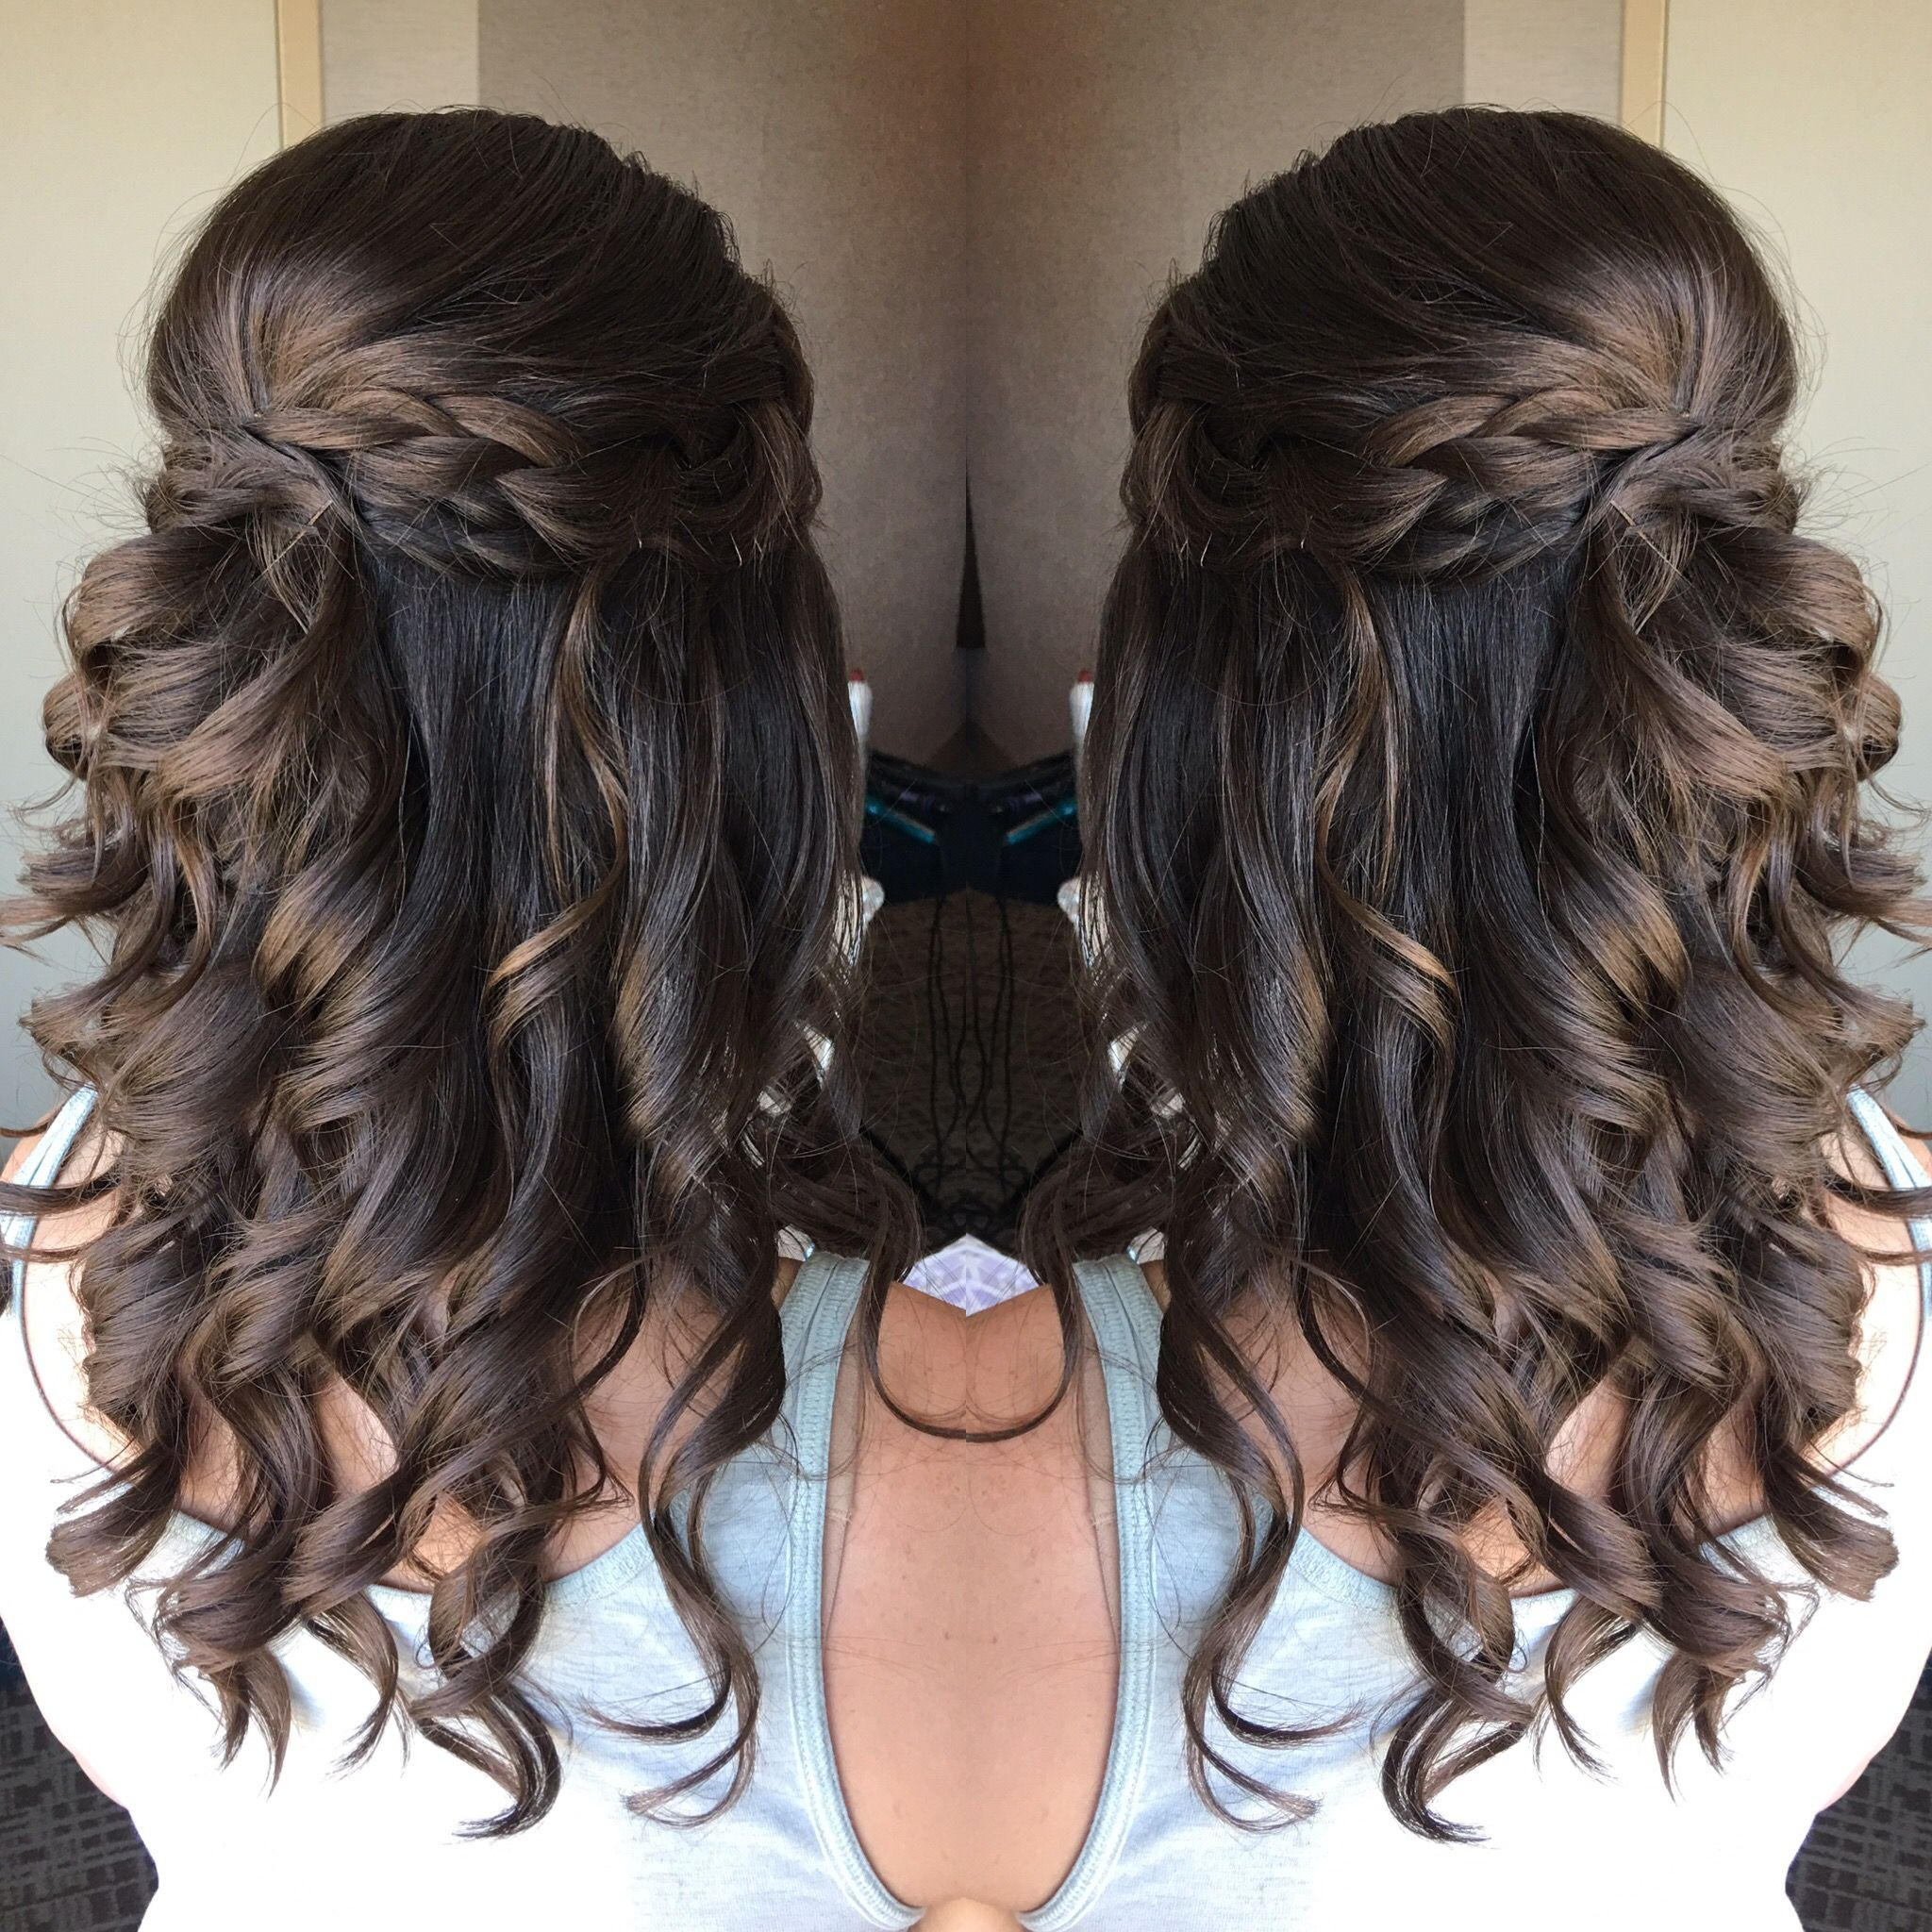 Braided half up half down wedding hairstyle